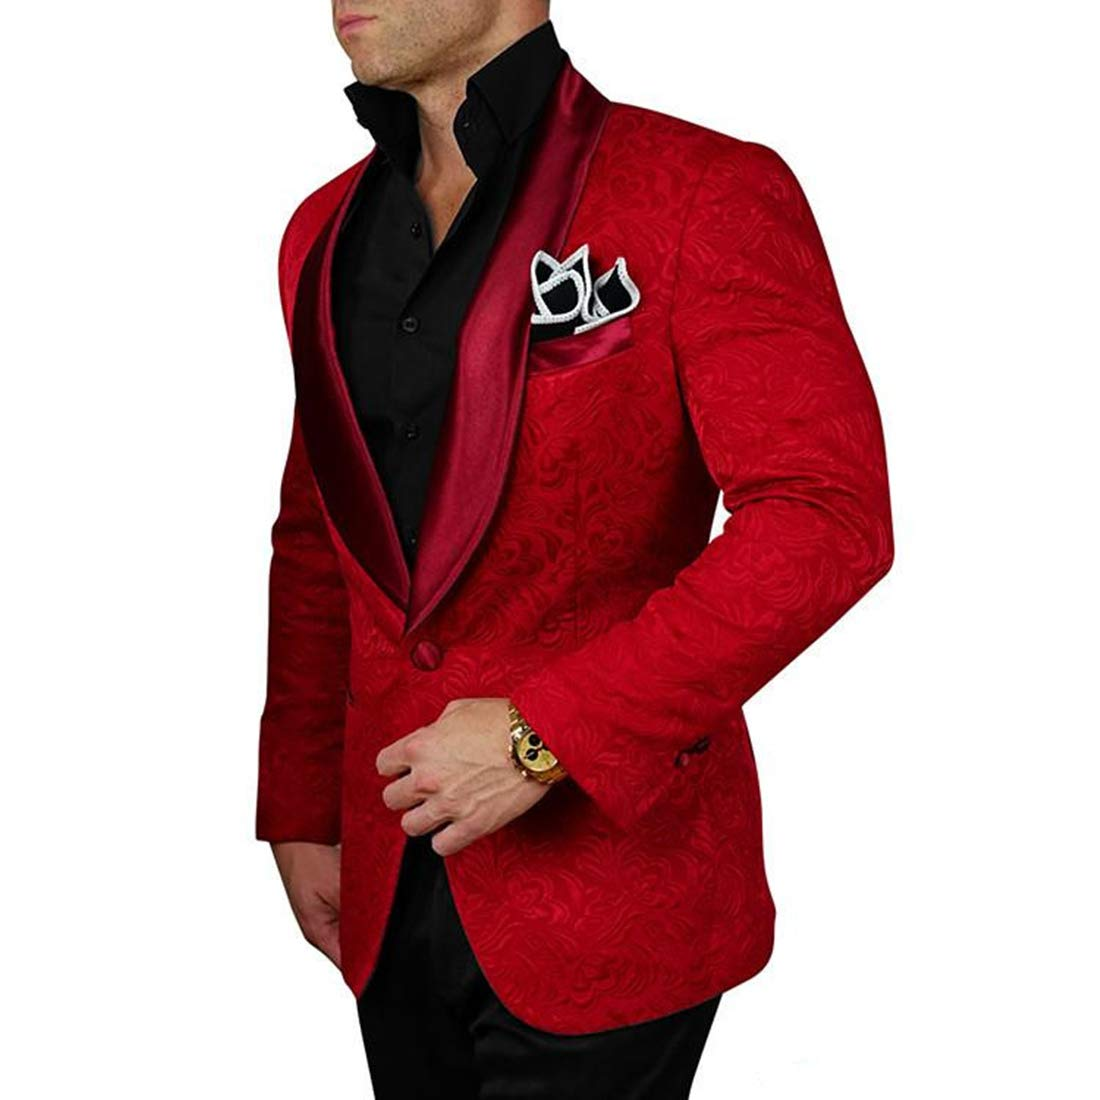 Calvinsuit Men's Three Pieces Suit Shawl Lapel Mens Suit Wedding Blazer Tuxedos CZ180930017